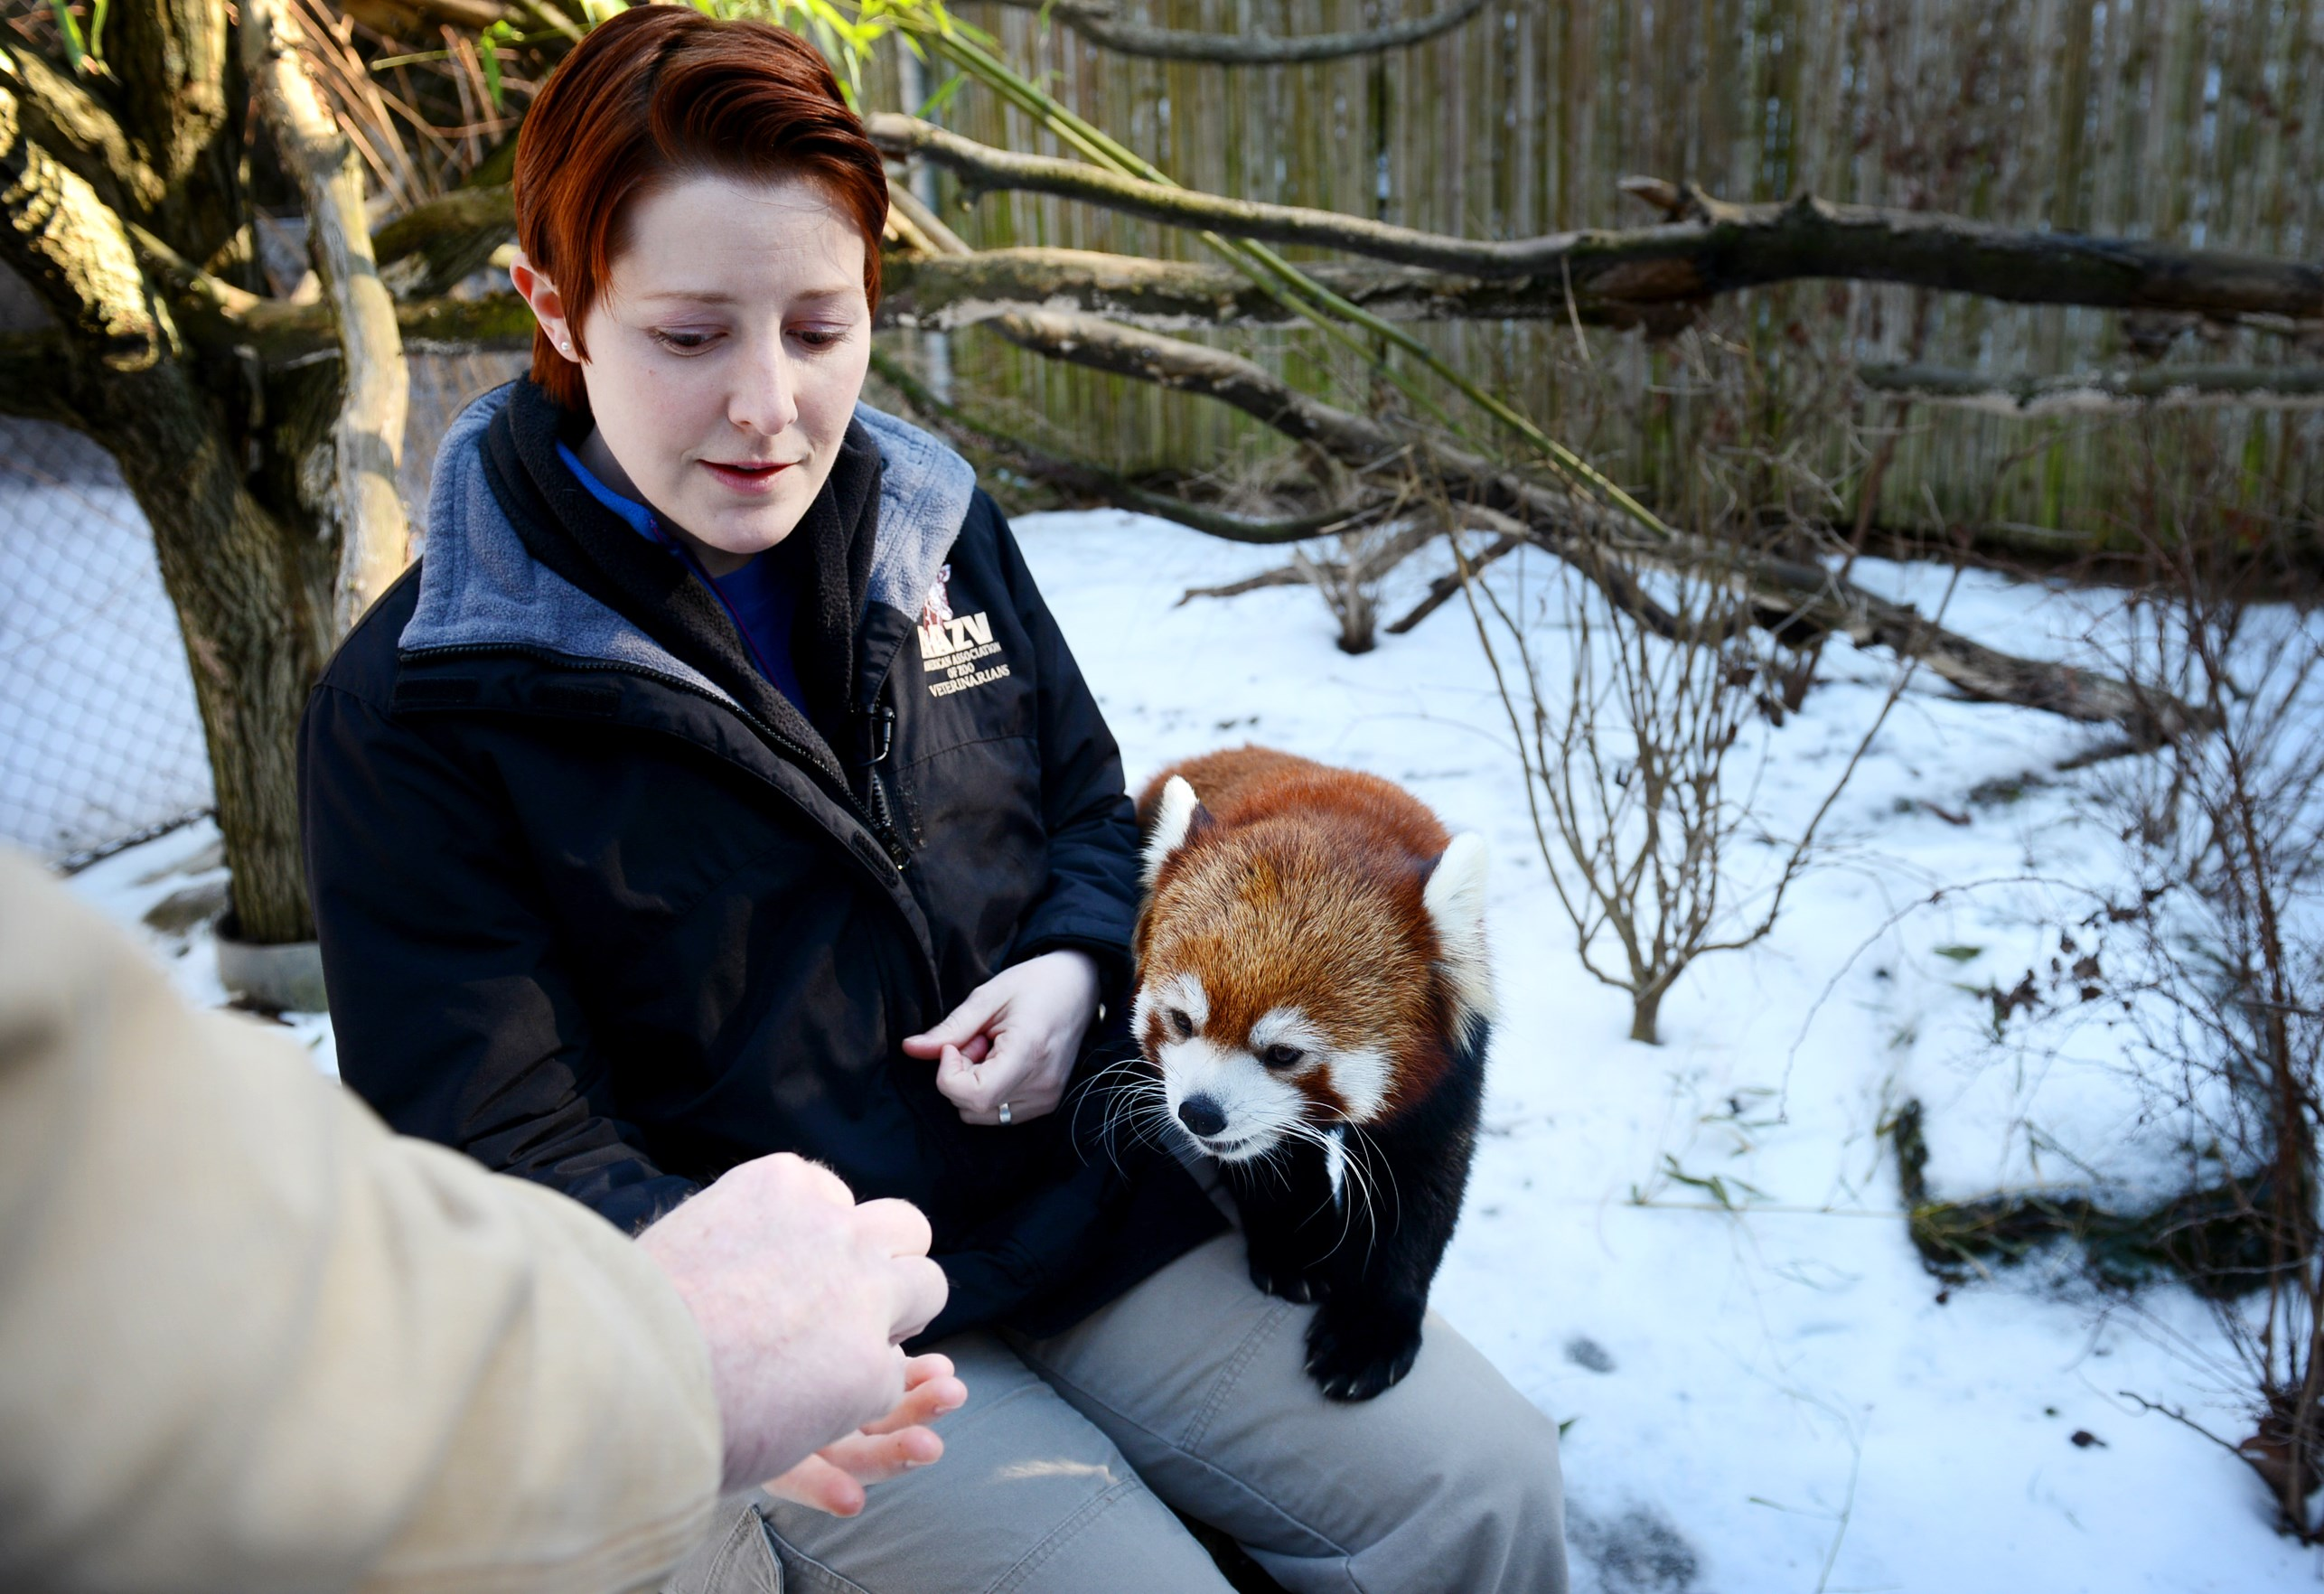 Xia, a three-year-old red panda, takes treats from vet Alicia Hahn while she inspect Xia's hair growth.